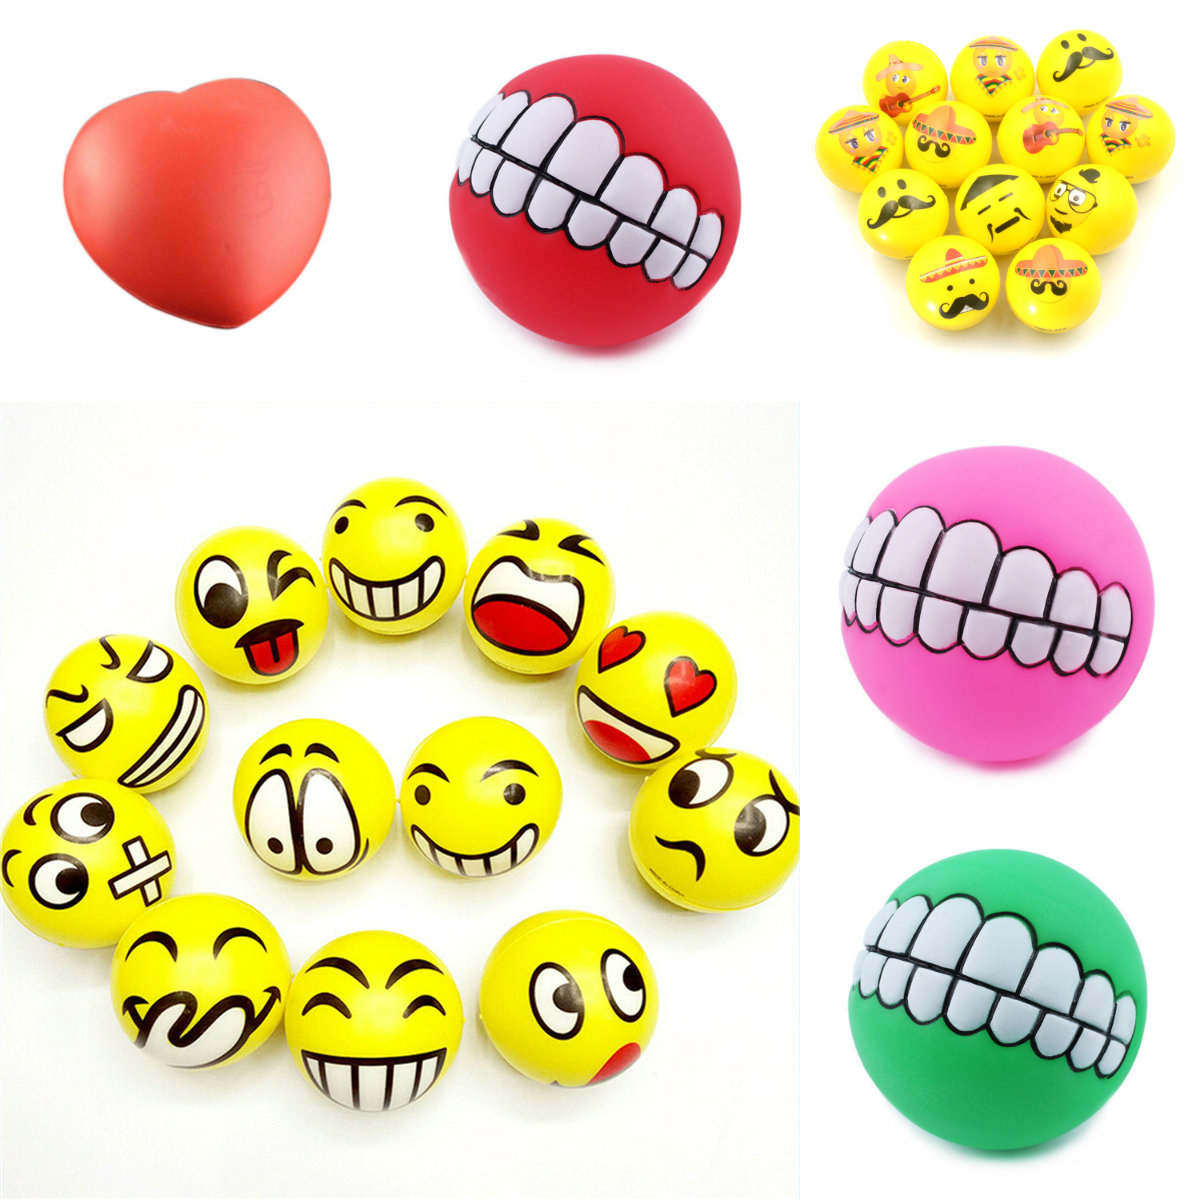 1 Pcs Smile Face Print Sponge Foam Squeeze Stress Ball Relief Yoga Gym Fitness Toy Hand Wrist Exercise PU Rubber Toy Balls